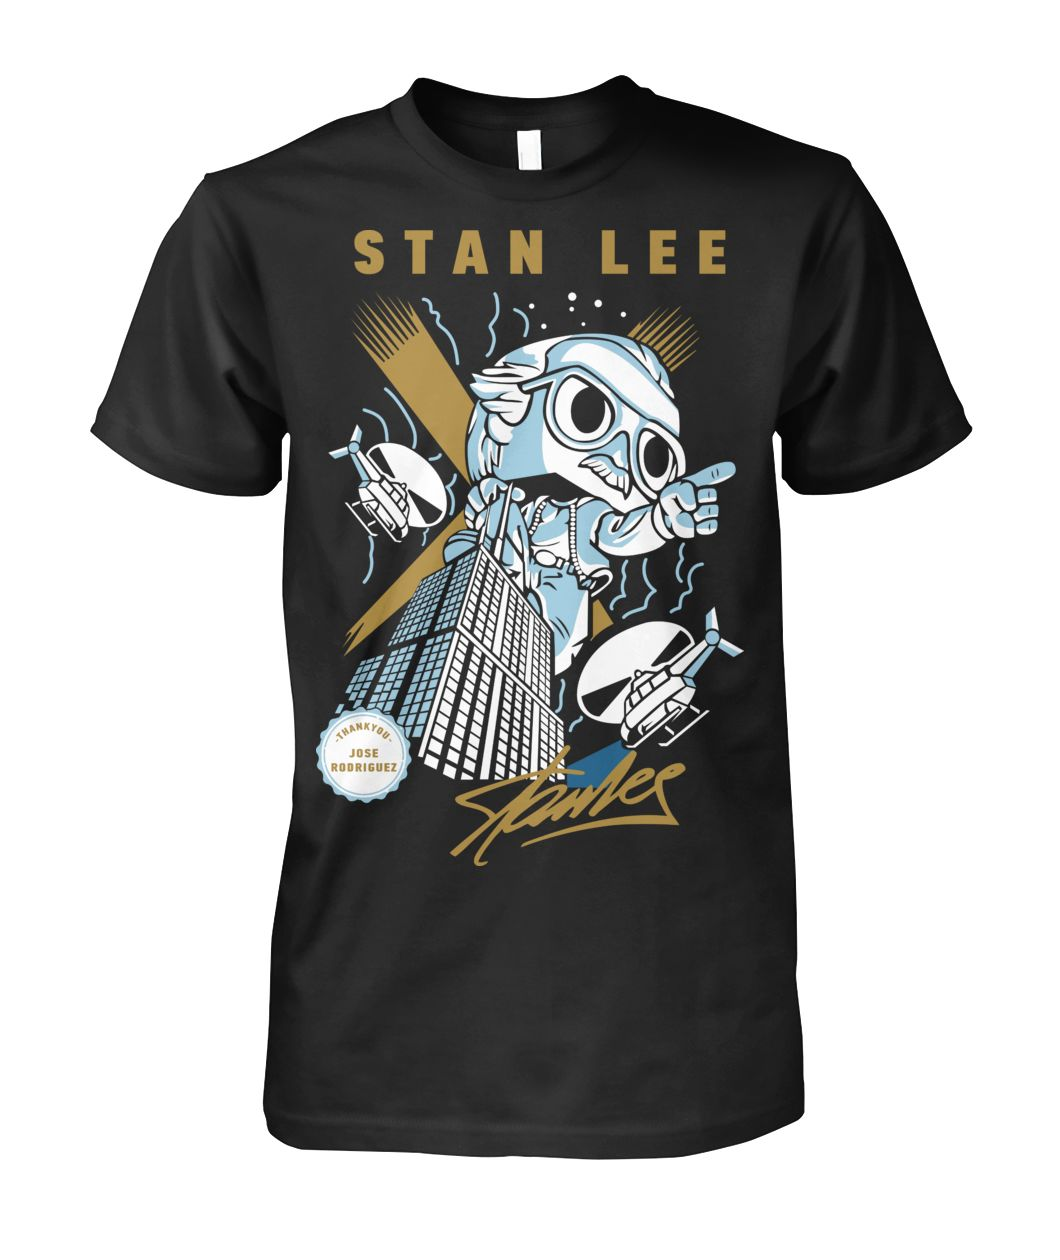 Stan Lee T-shirt for Jose Rodriguez Unisex Cotton Tee